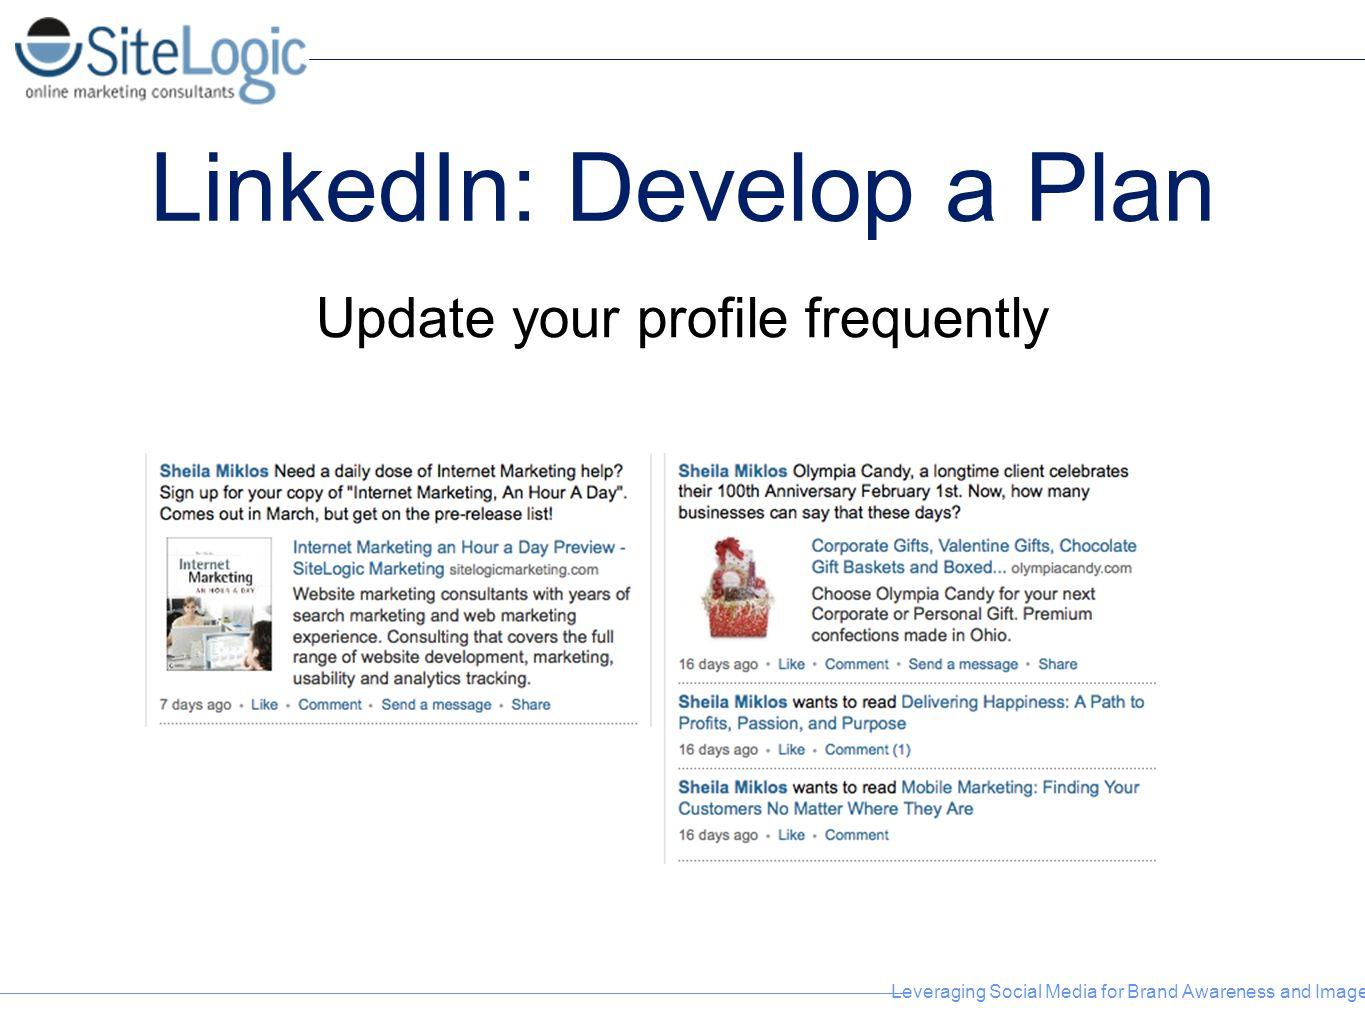 Leveraging Social Media for Brand Awareness and Image LinkedIn: Develop a Plan Update your profile frequently